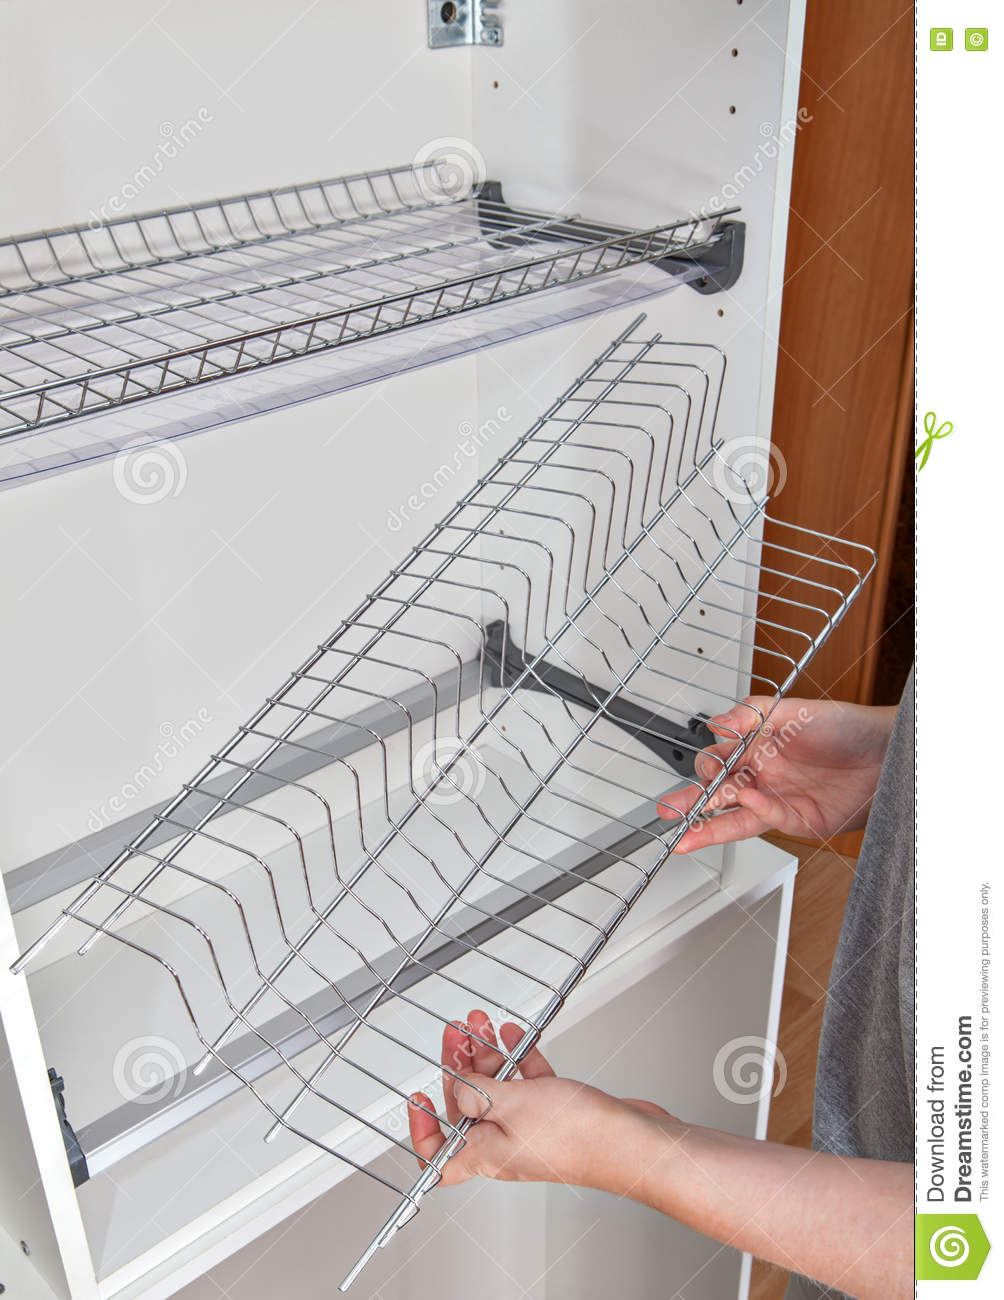 Assembly Wire Dish Rack For Drying Dishes Inside Kitchen Cabinet With A Dryer Schematic Wiring 4 Wires